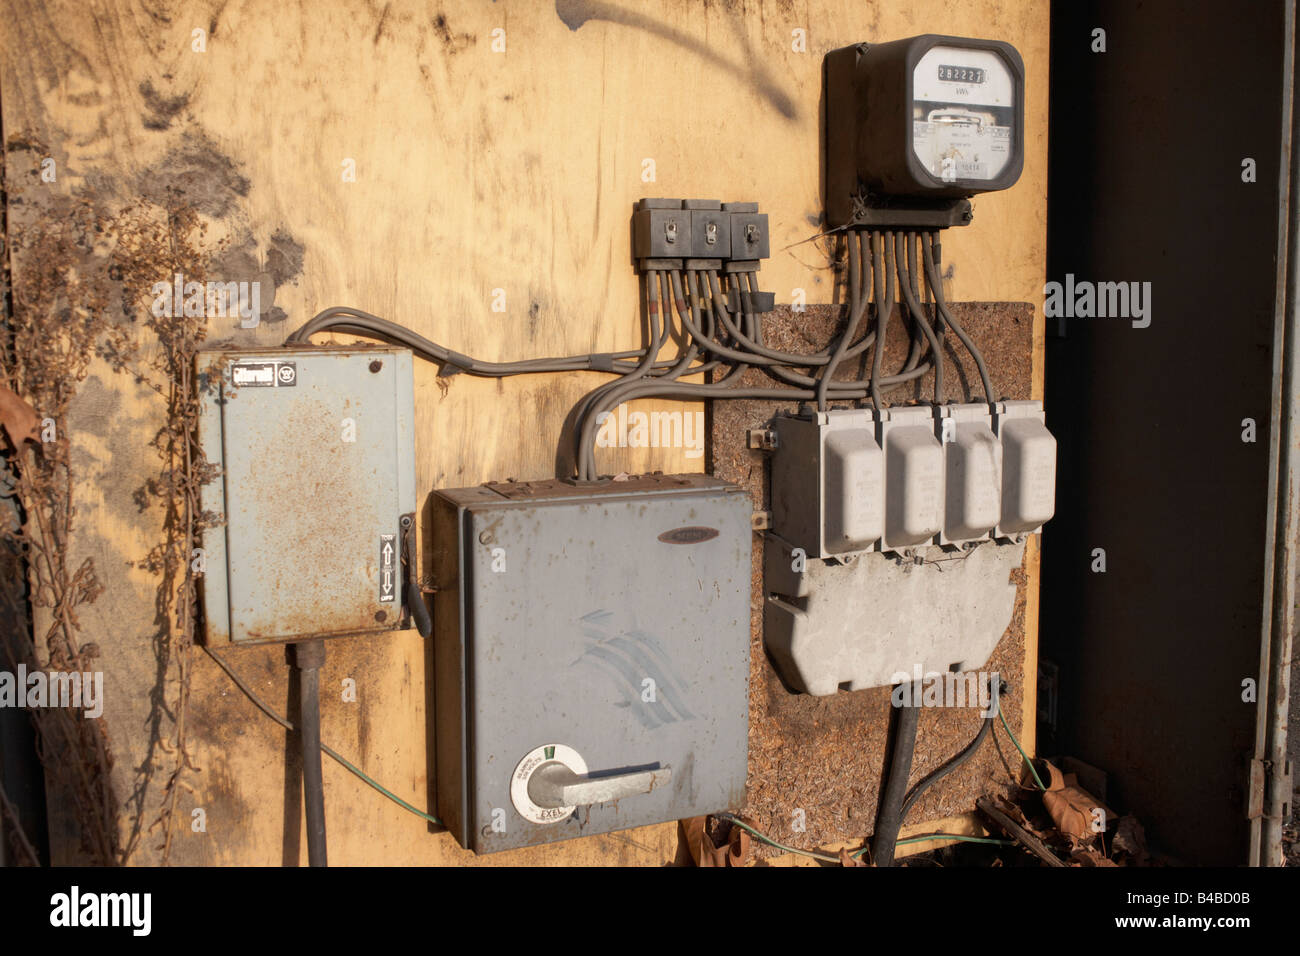 old electricity junction box stock photos old electricity rh alamy com Electrical Junction Box Diagrams Simple Electrical Wire Junction Box Diagrams